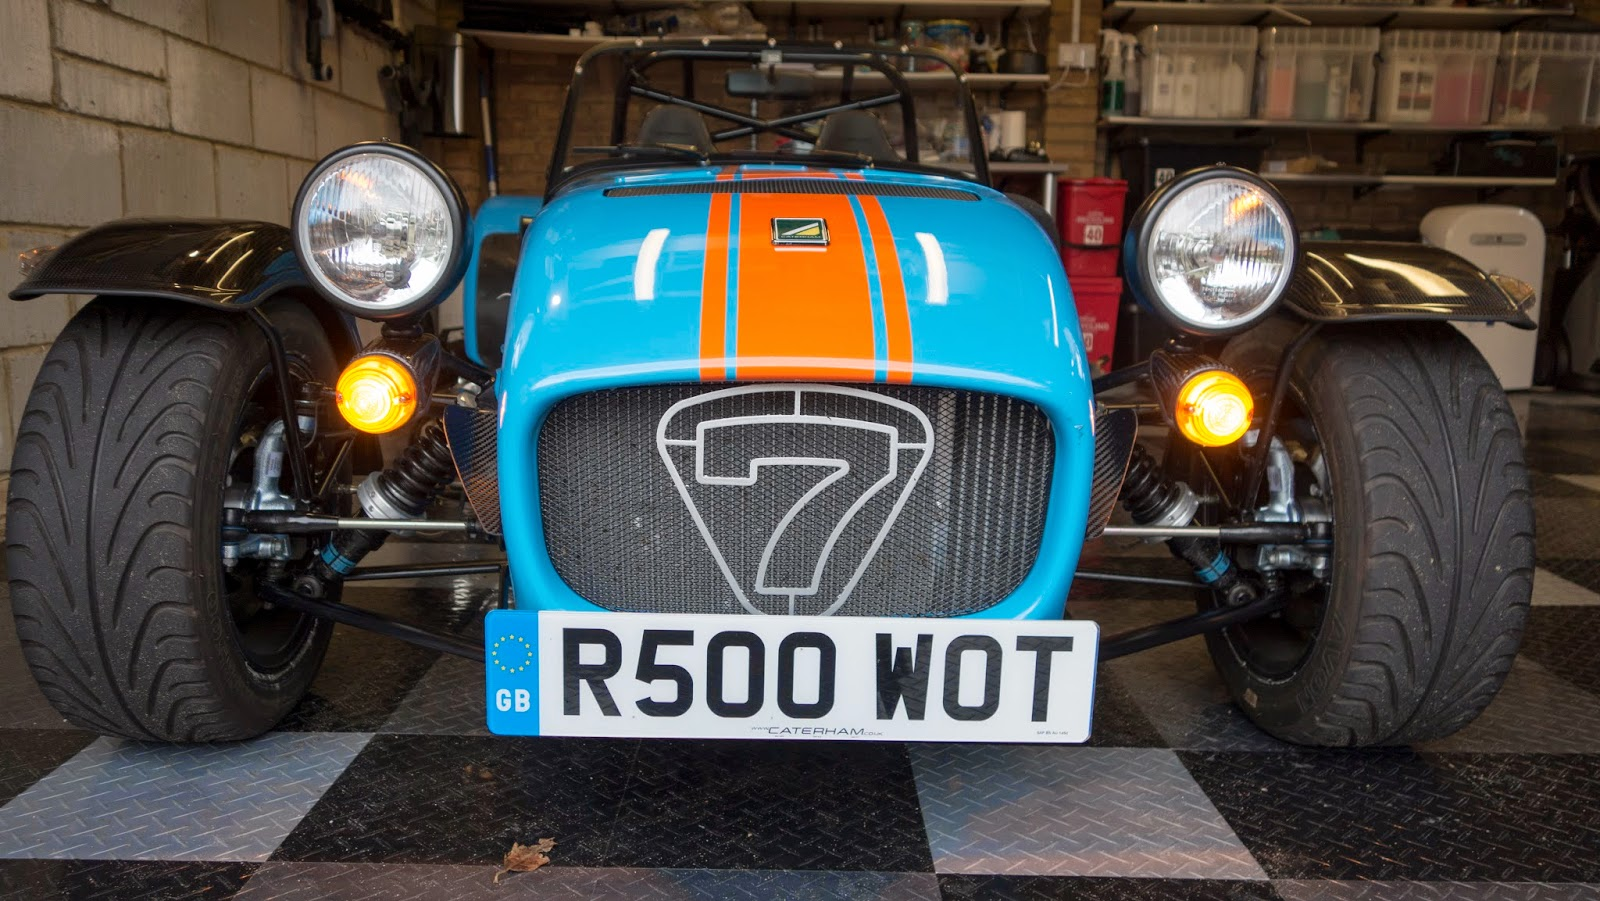 Caterham R500 Front with standard indicators illuminated.